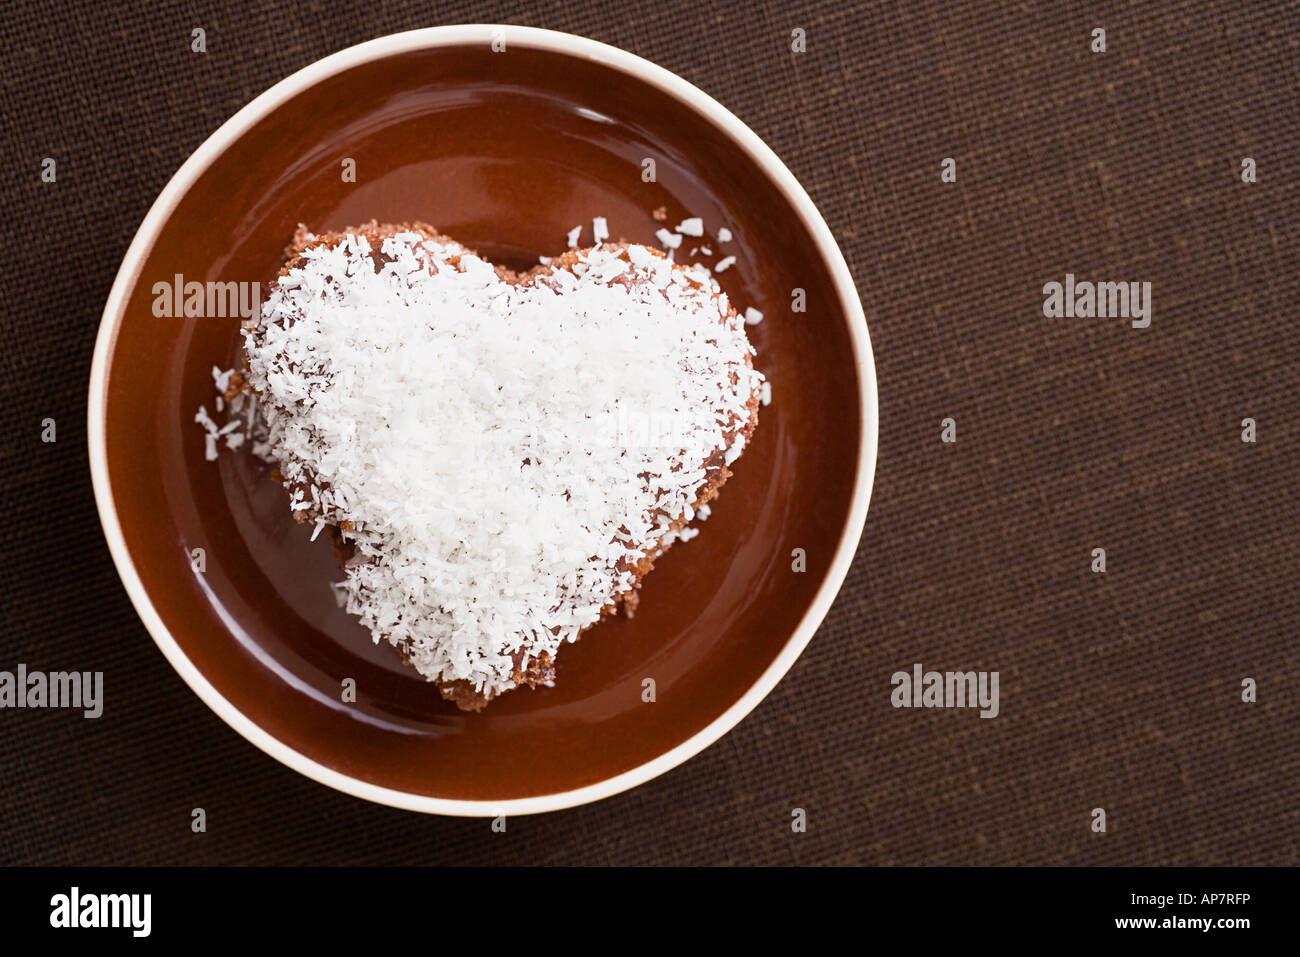 A cake decorated in desiccated coconut - Stock Image